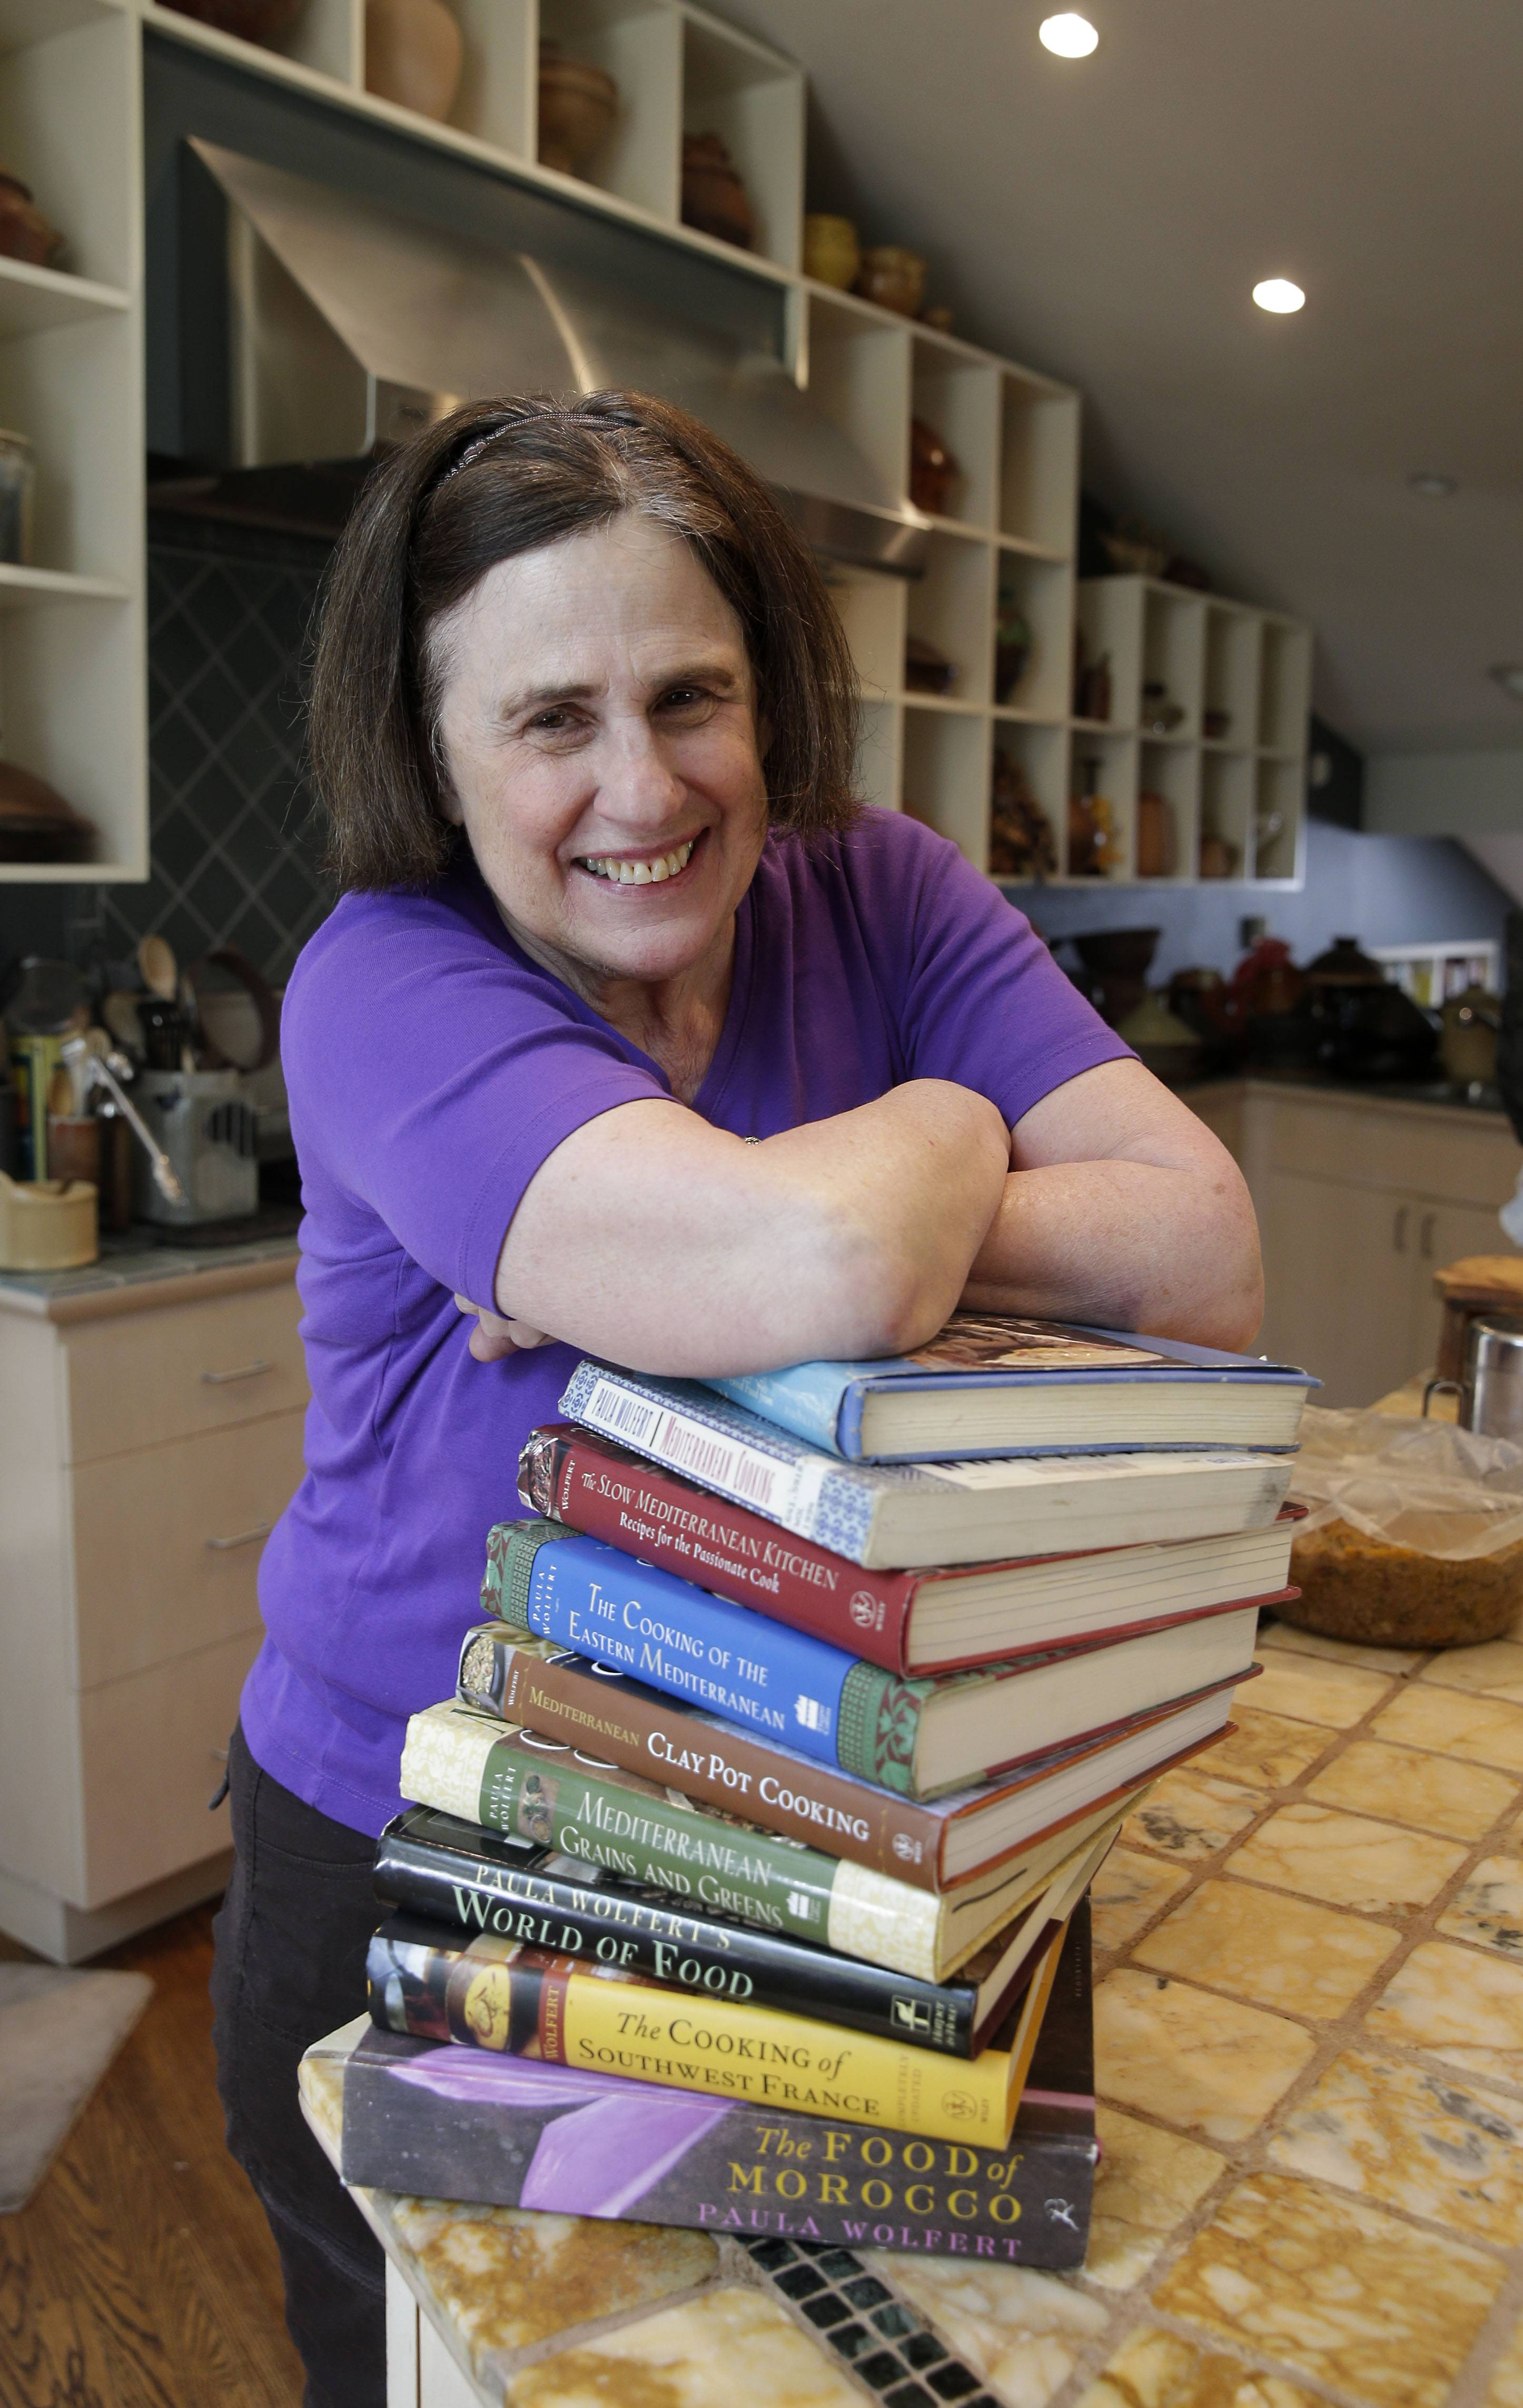 Cookbook author Paula Wolfert shows off some of her cookbooks at her home in Sonoma, Calif. in May.